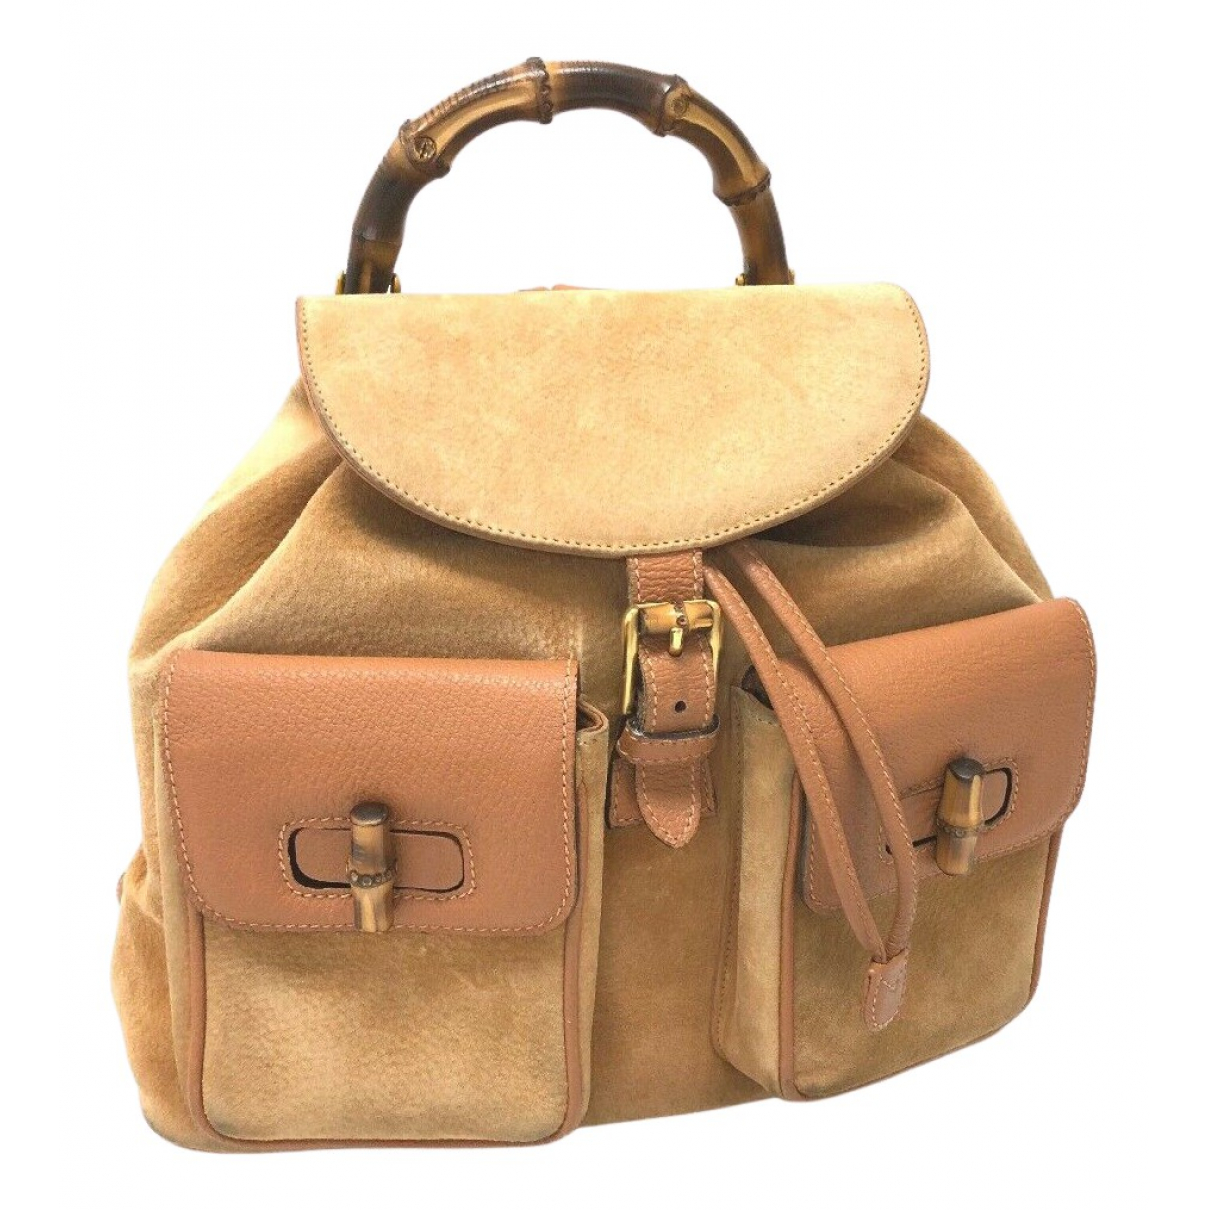 Gucci Bamboo Beige Suede backpack for Women N